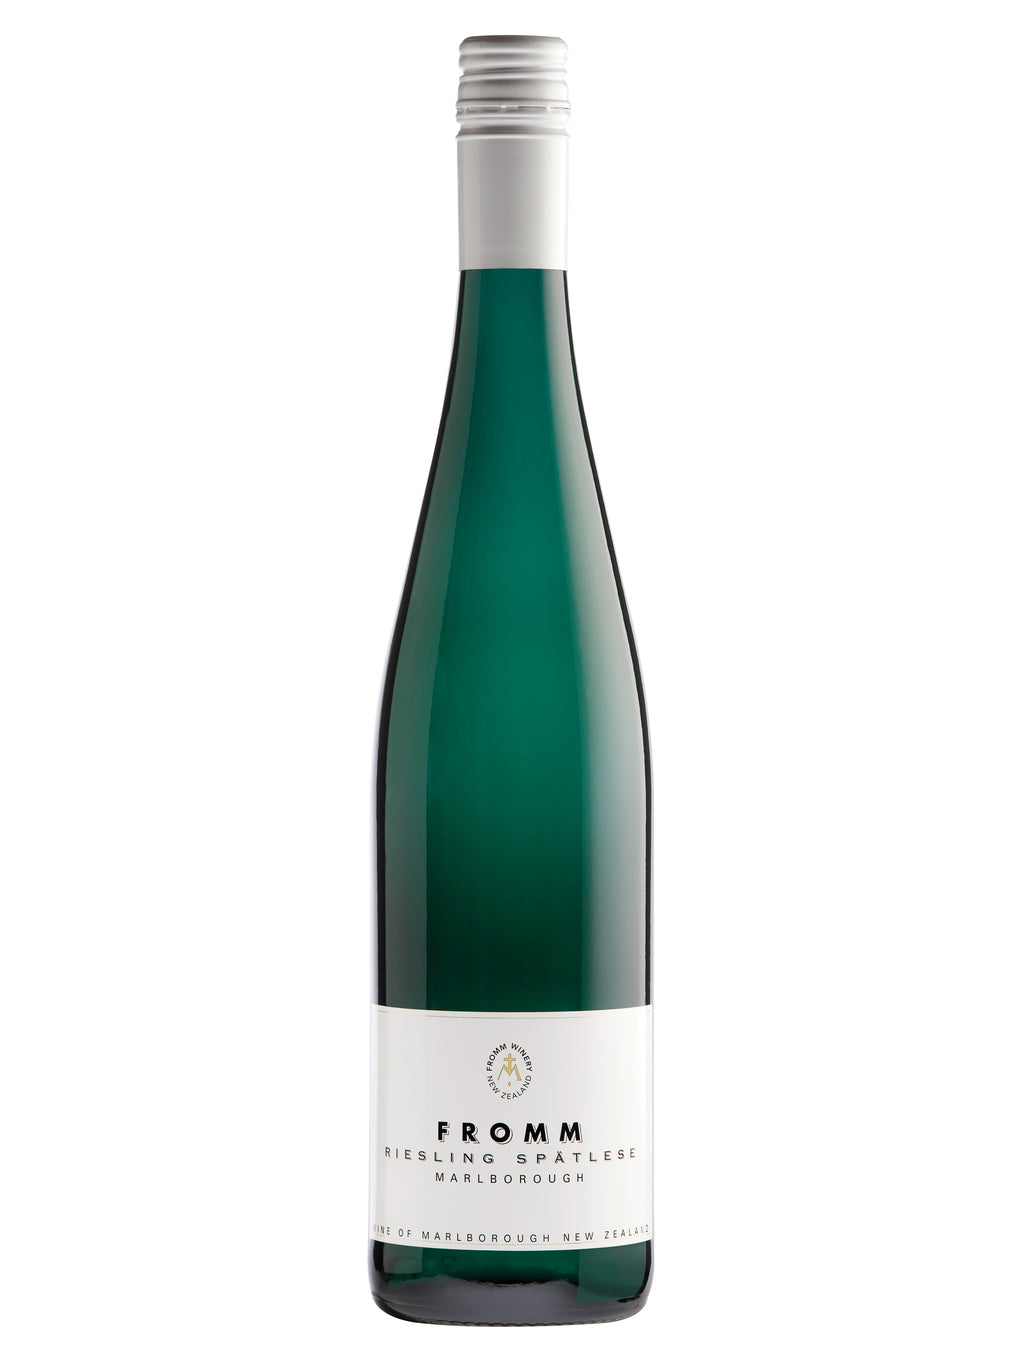 Fromm Winery, Fromm Spatlese Riesling, Marlborough Winery, Marlborough Wines, New Zealand Wine, New Zealand Wine Events, Auckland Wine Events, Winetopia, Auckland Restaurant Month, Wine and Food, Online Wine Shop, New Zealand Wine Shop, Shop Local, Small Business